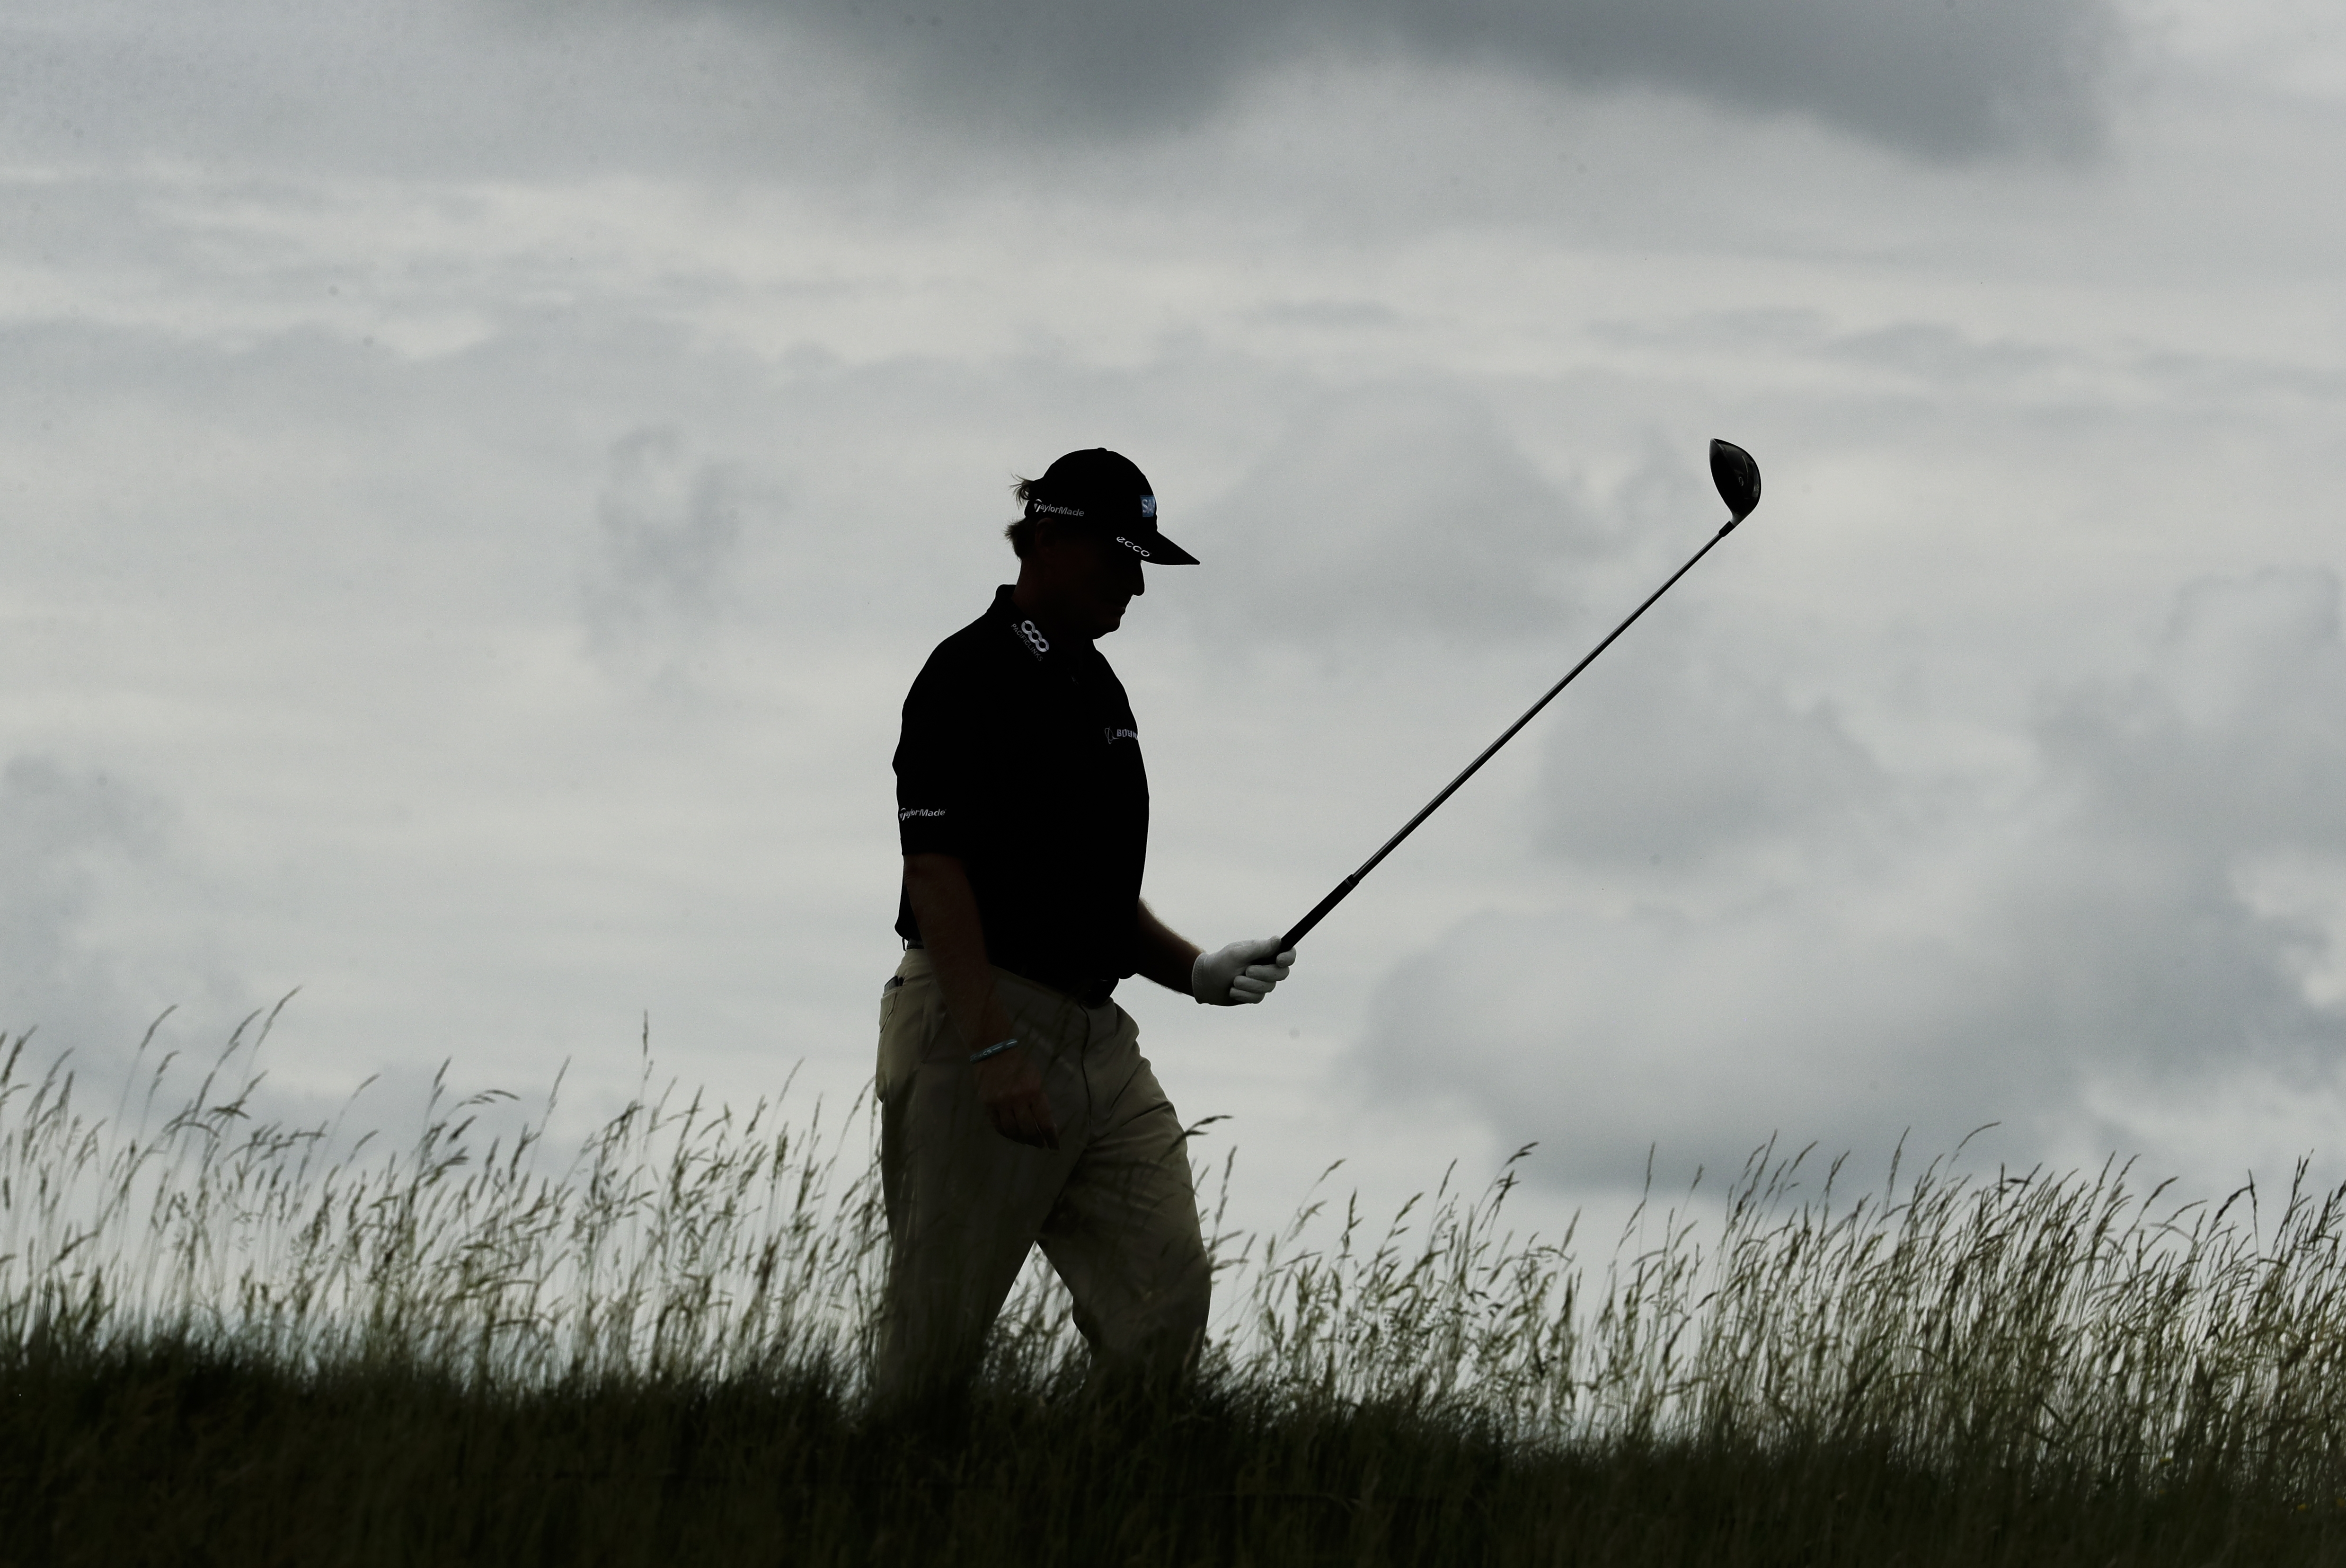 Ernie Els, of South Africa, walks on the 18th hole during the third round of the U.S. Open golf tournament Saturday, June 17, 2017, at Erin Hills in Erin, Wis. (AP Photo/A Charlie Riedel)